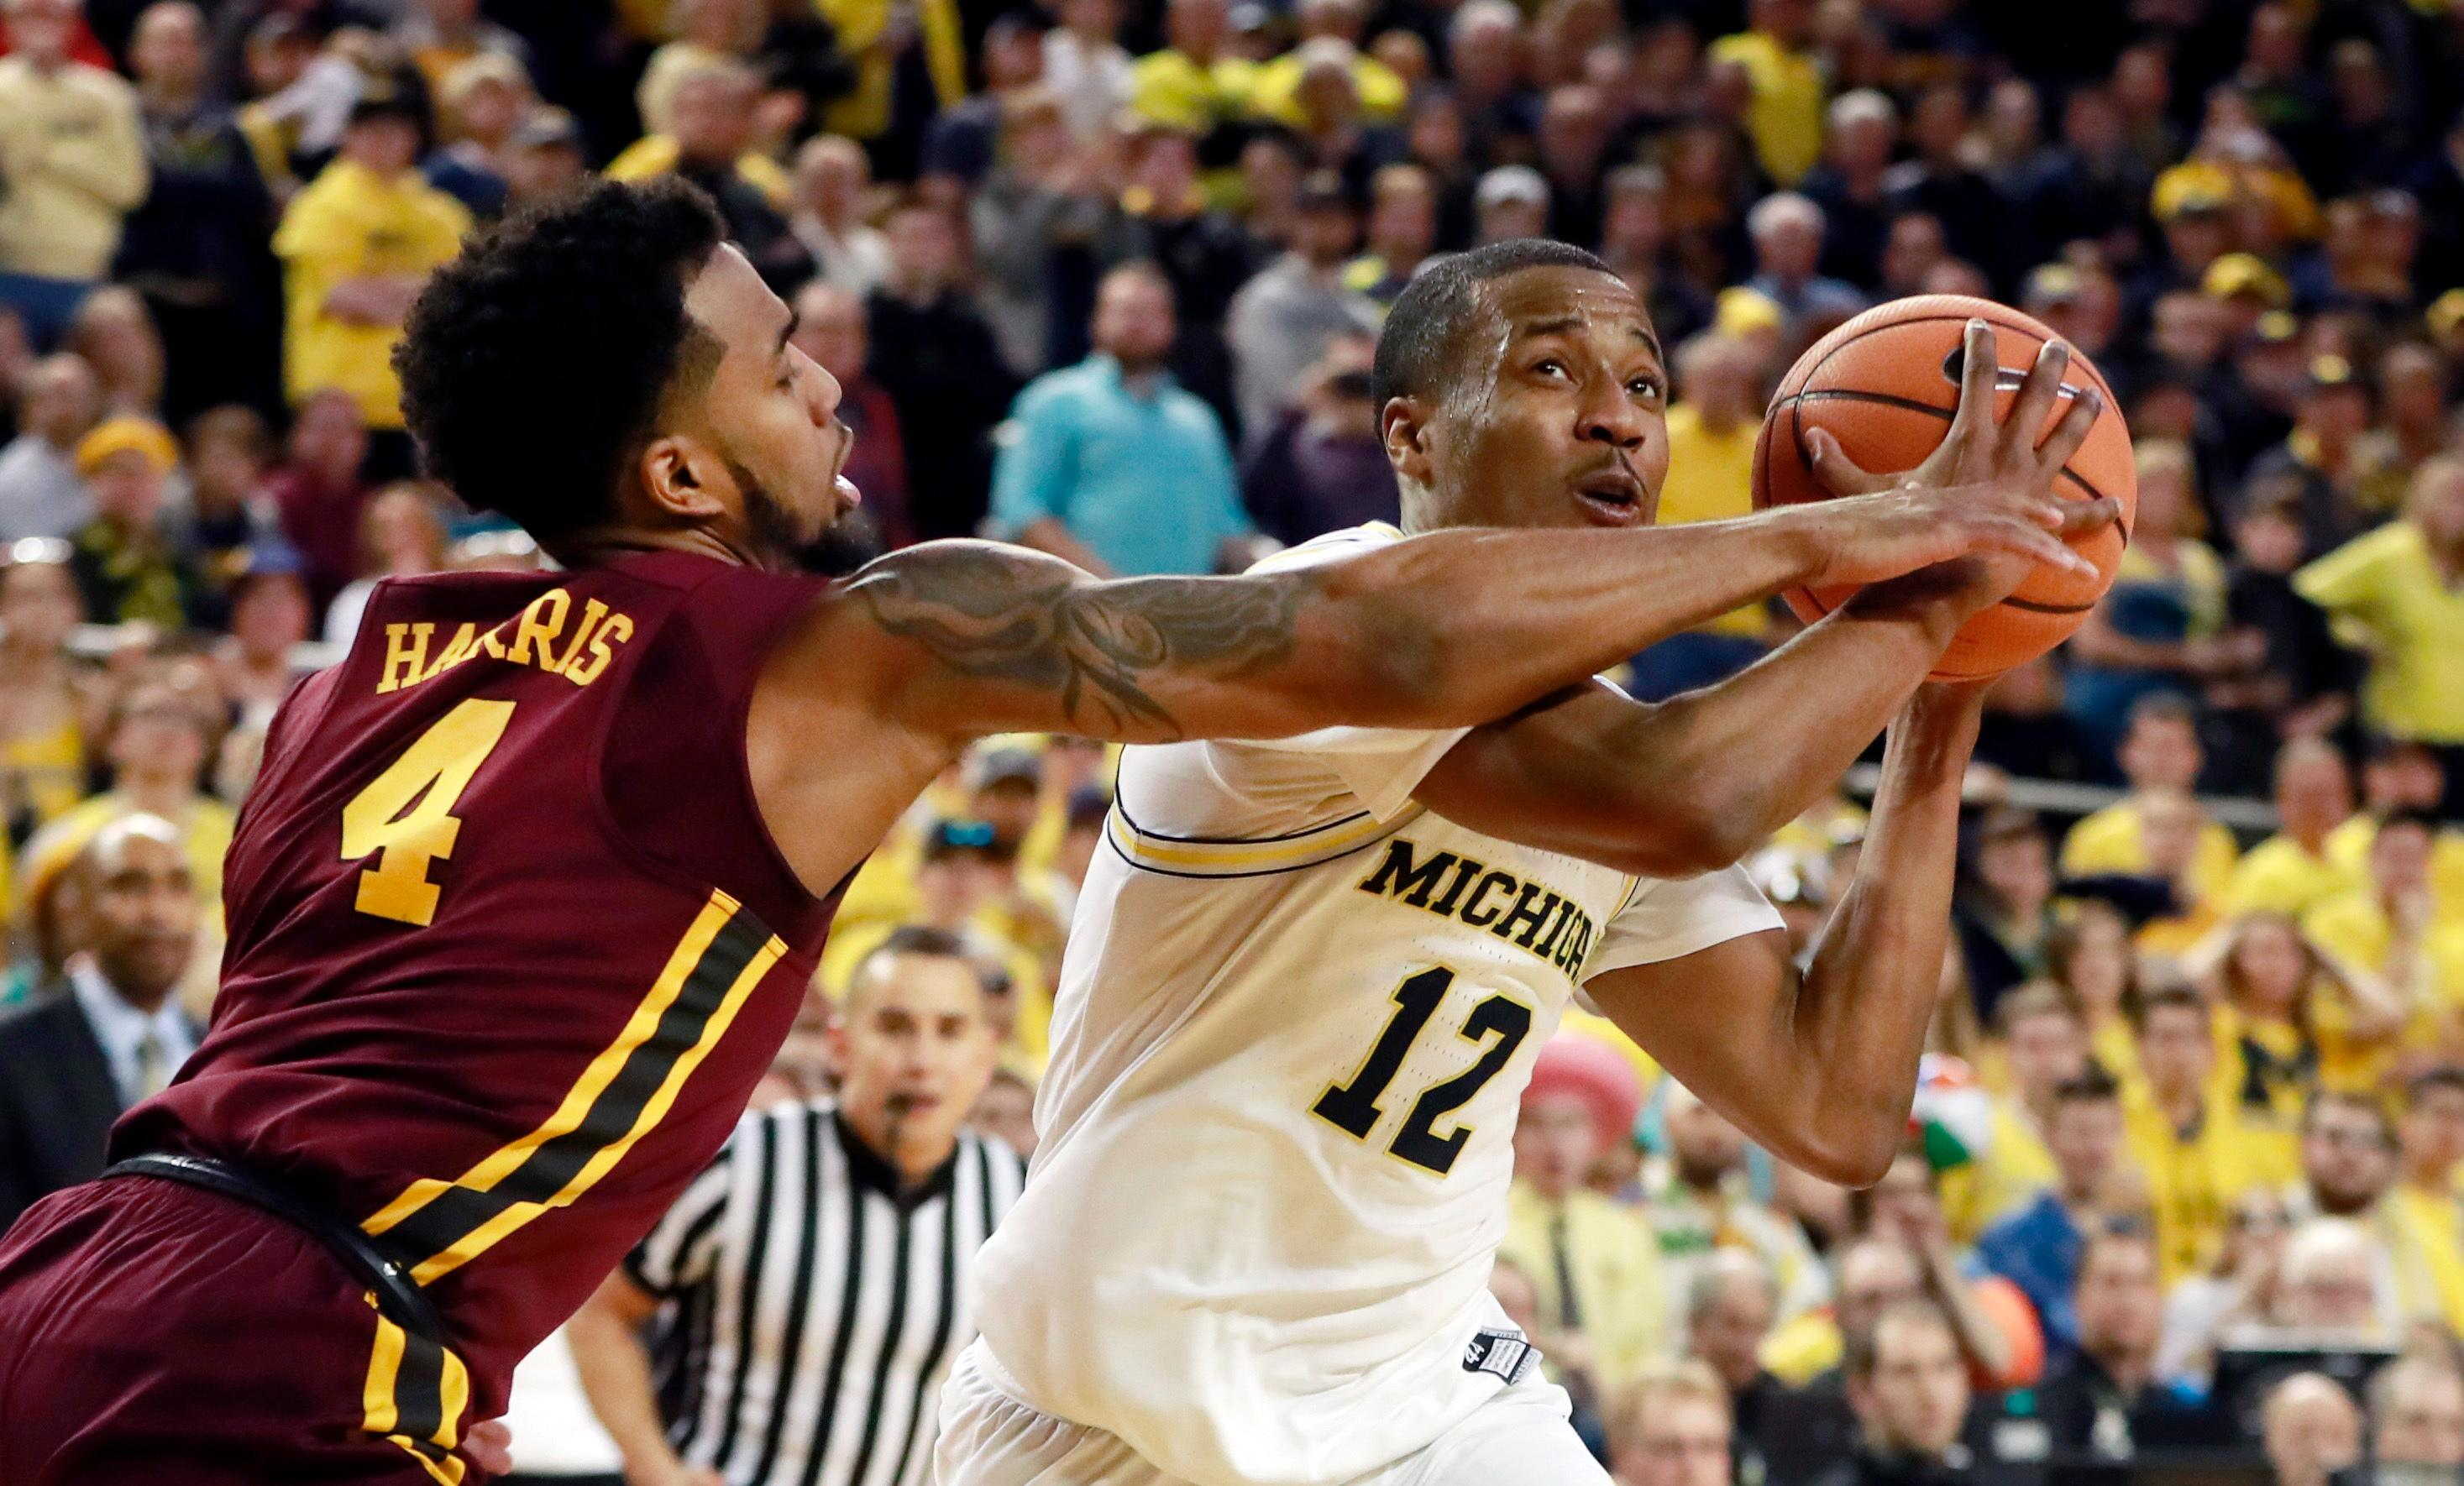 Michigan guard Muhammad-Ali Abdur-Rahkman (12) is fouled by Minnesota guard Jamir Harris (4) during overtime of an NCAA college basketball game, Saturday, Feb. 3, 2018, in Ann Arbor, Mich. (AP Photo/Carlos Osorio)